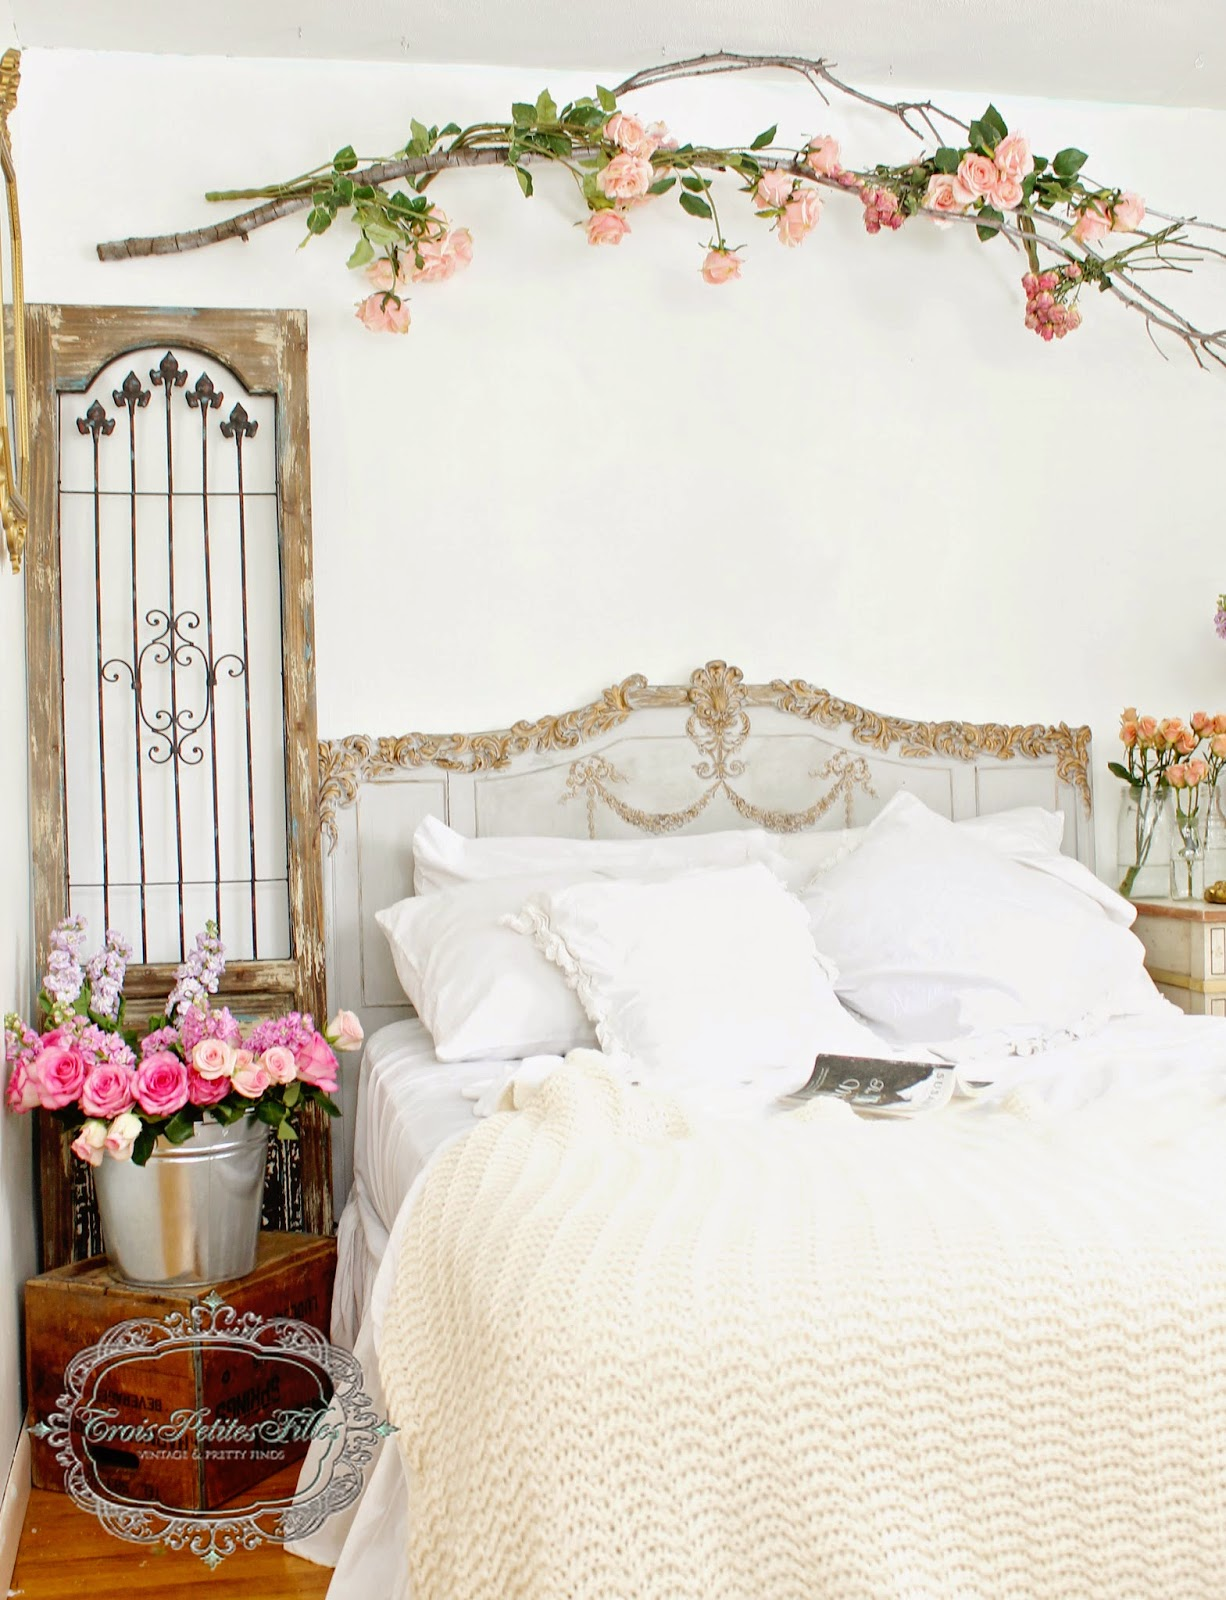 Trois Petites Romantic Bedroom-Treasure Hunt Thursday- From My Front Porch To Yours